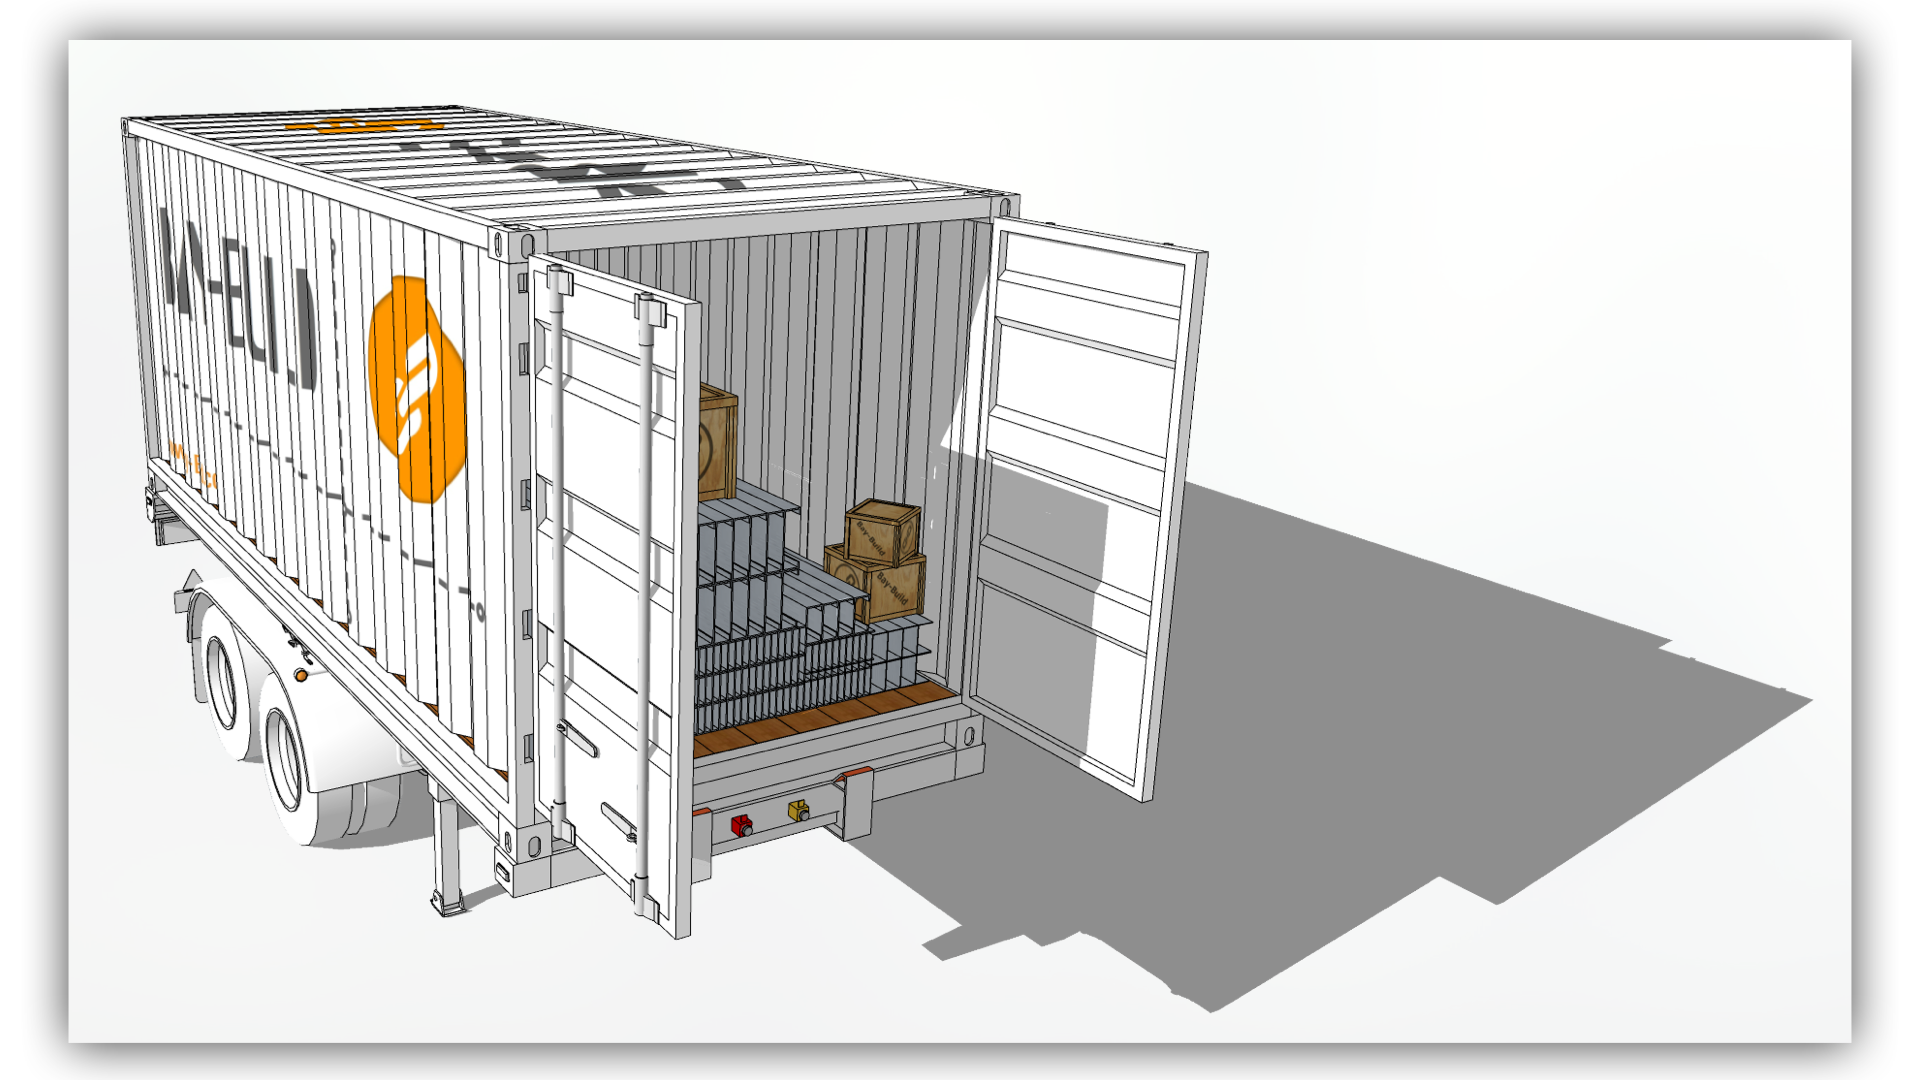 Delivery - The frame is securely delivered using a standard shipping container. All components, tools, and instructions are provided using certified suppliers. The Bay-Build system acts as a chain of custody instrument for ensuring quality and providing supply-chain transparency during the development process.